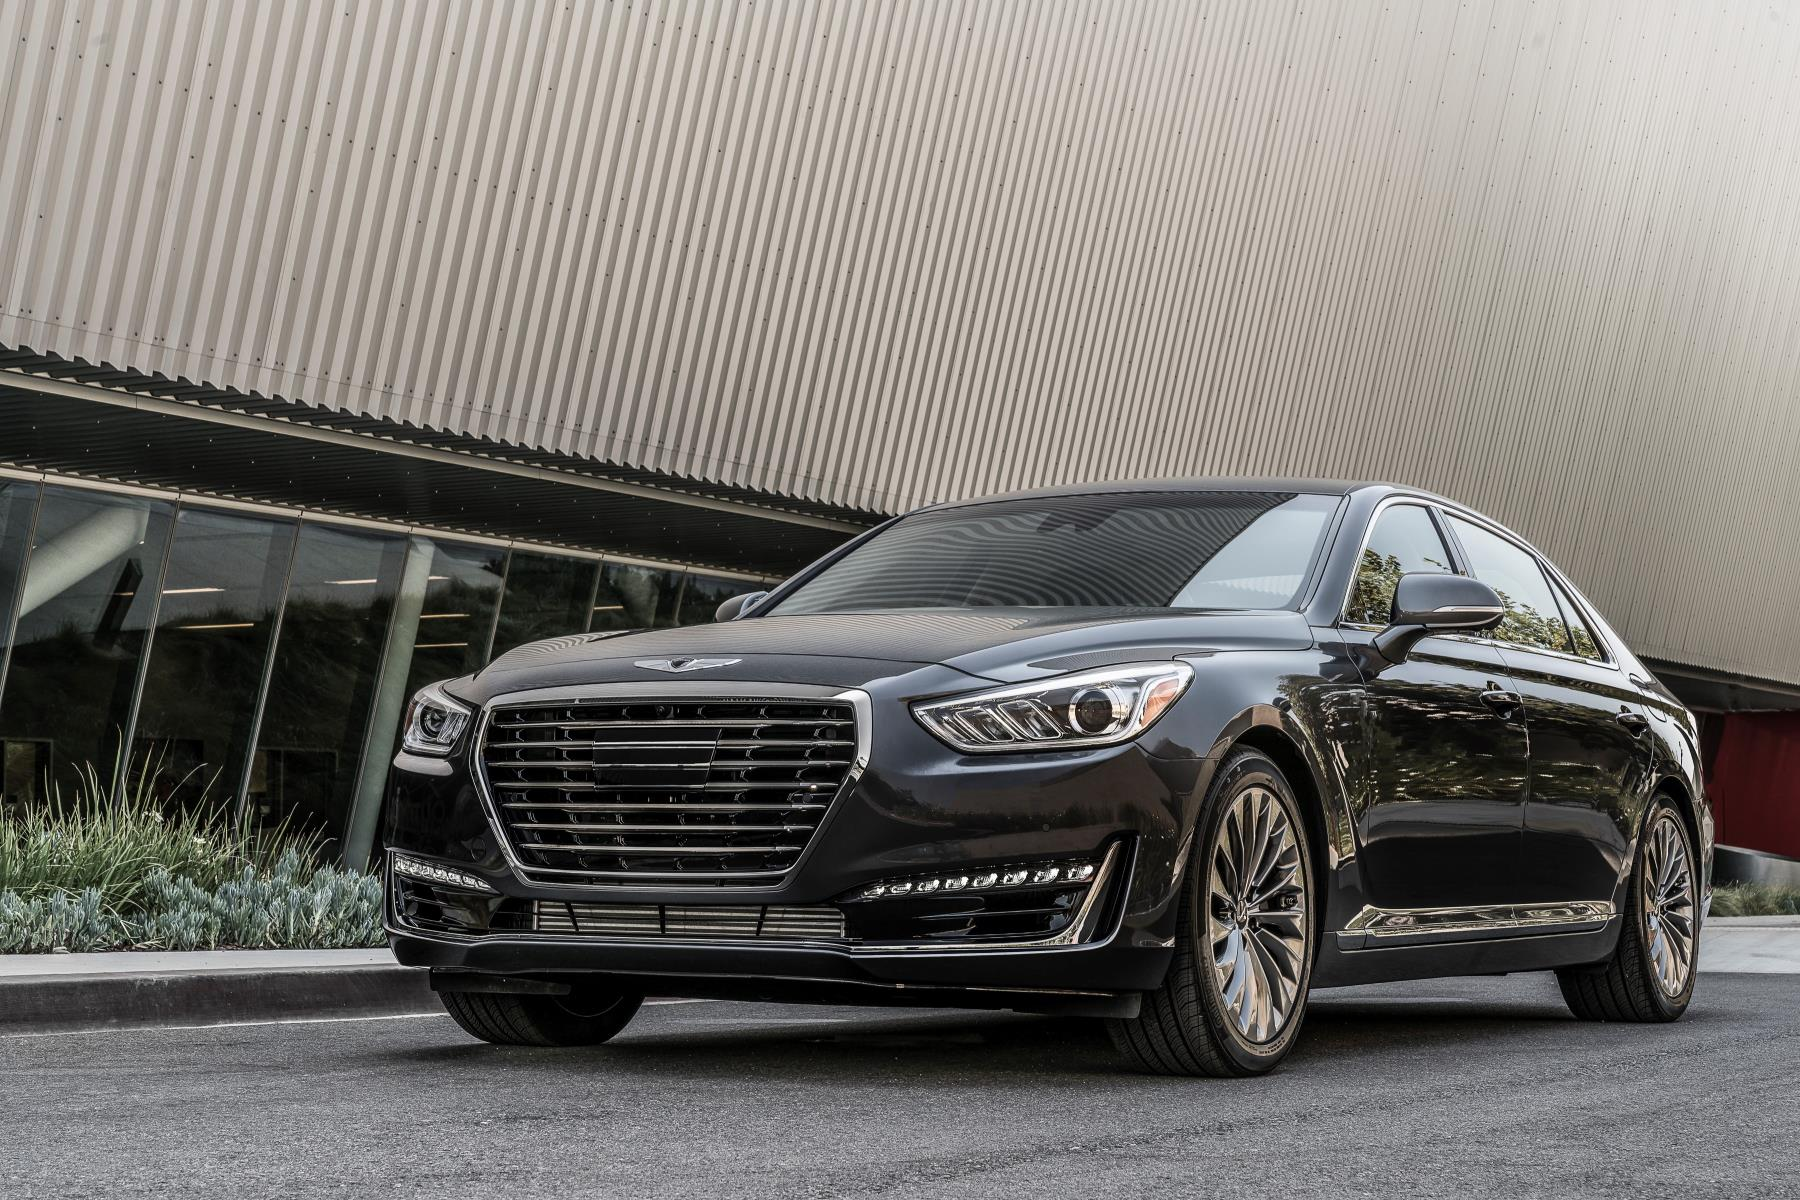 2017 genesis g90 flagship detailed has most standard kit in its class autoevolution. Black Bedroom Furniture Sets. Home Design Ideas